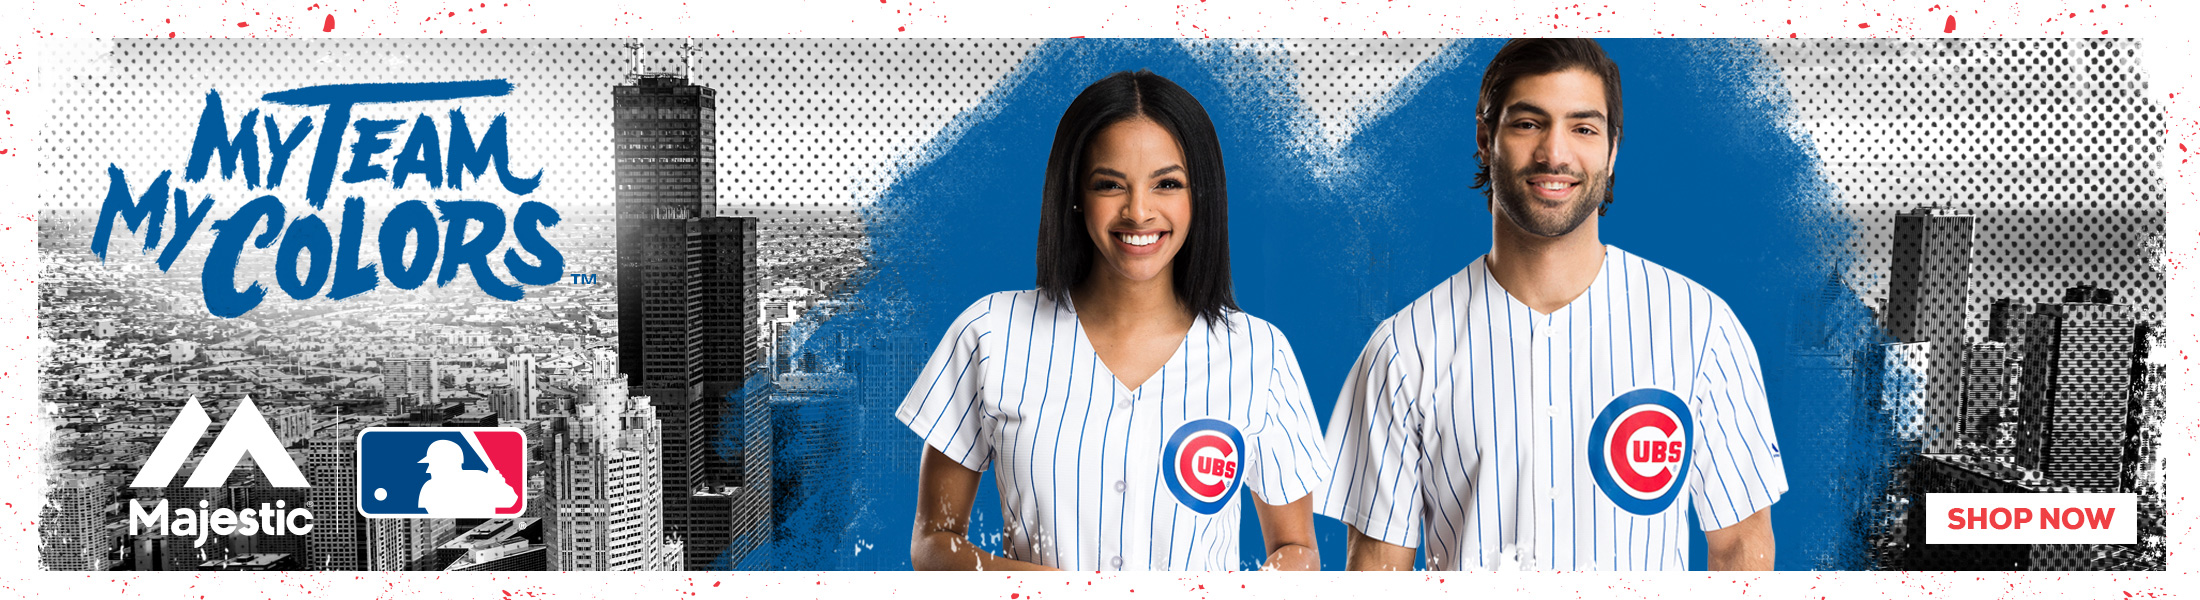 Chicago Cubs Jerseys at SportsWorldChicago.com